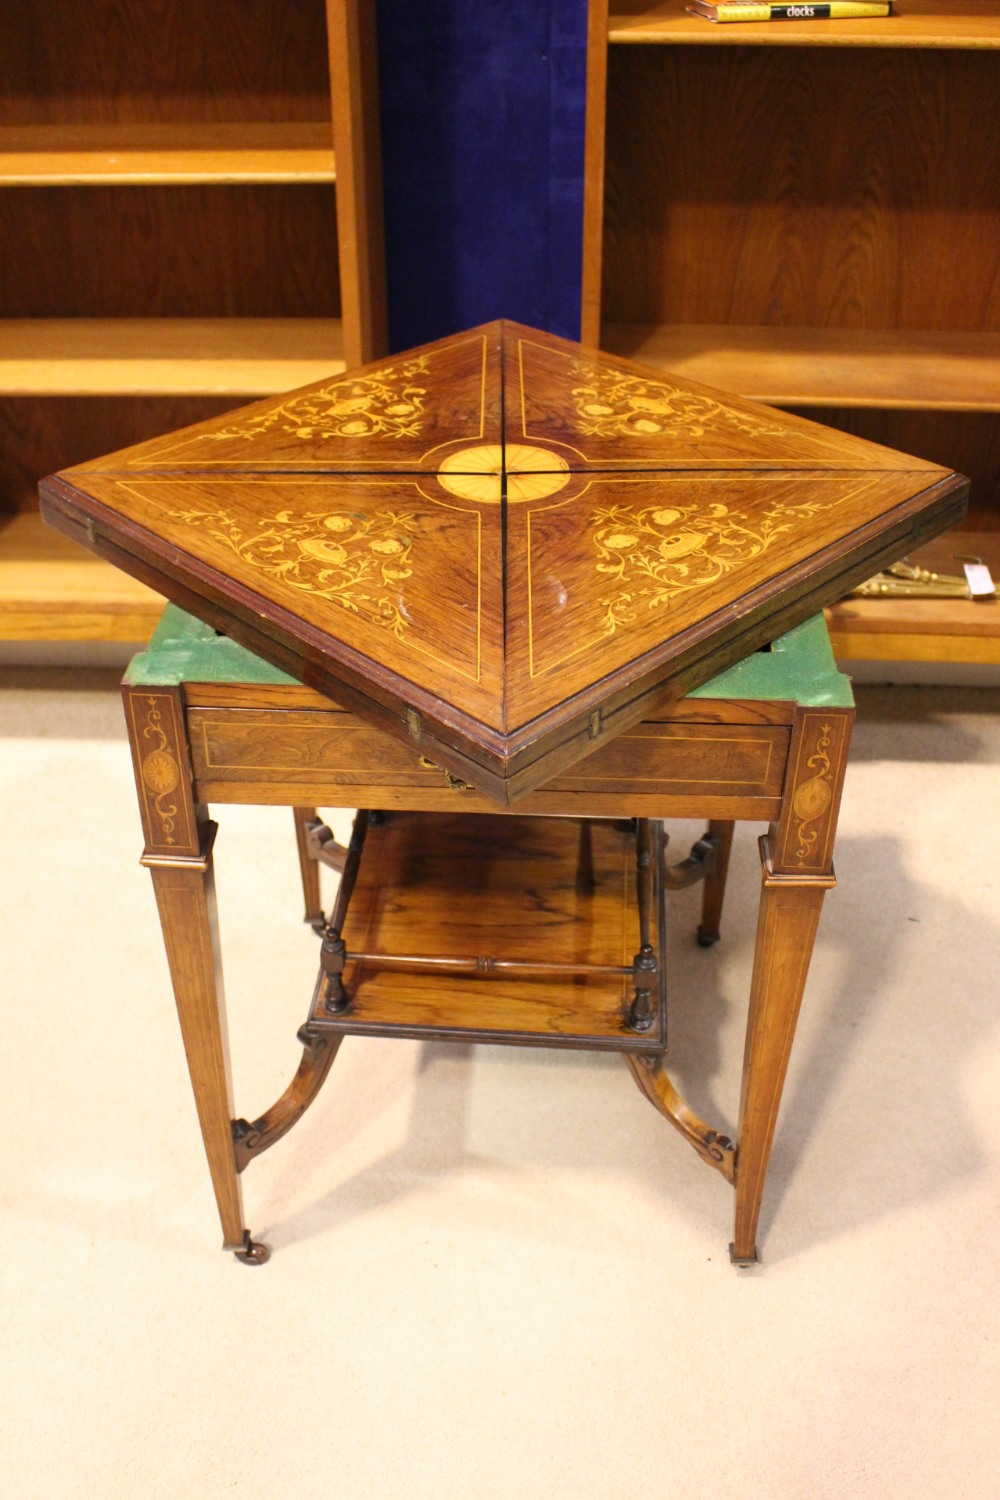 Lot 77 - A VERY FINE EDWARDIAN FOLD OVER 'ENVELOPE' CARD / GAMES TABLEL, with inlaid detail throughout, the